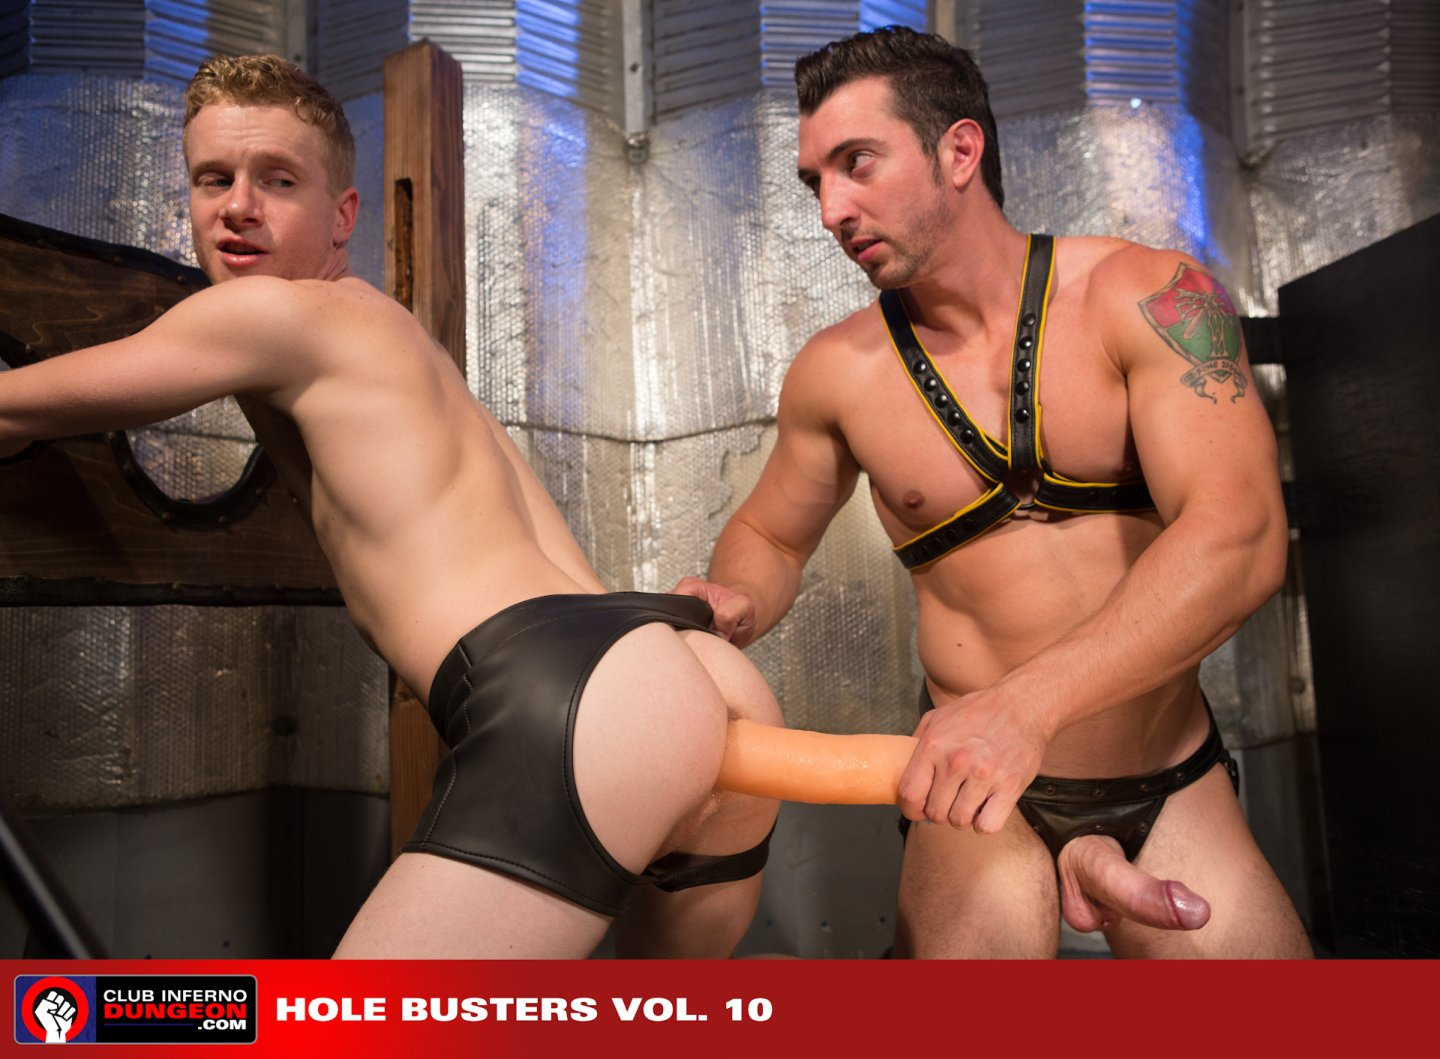 german gay male dungeon